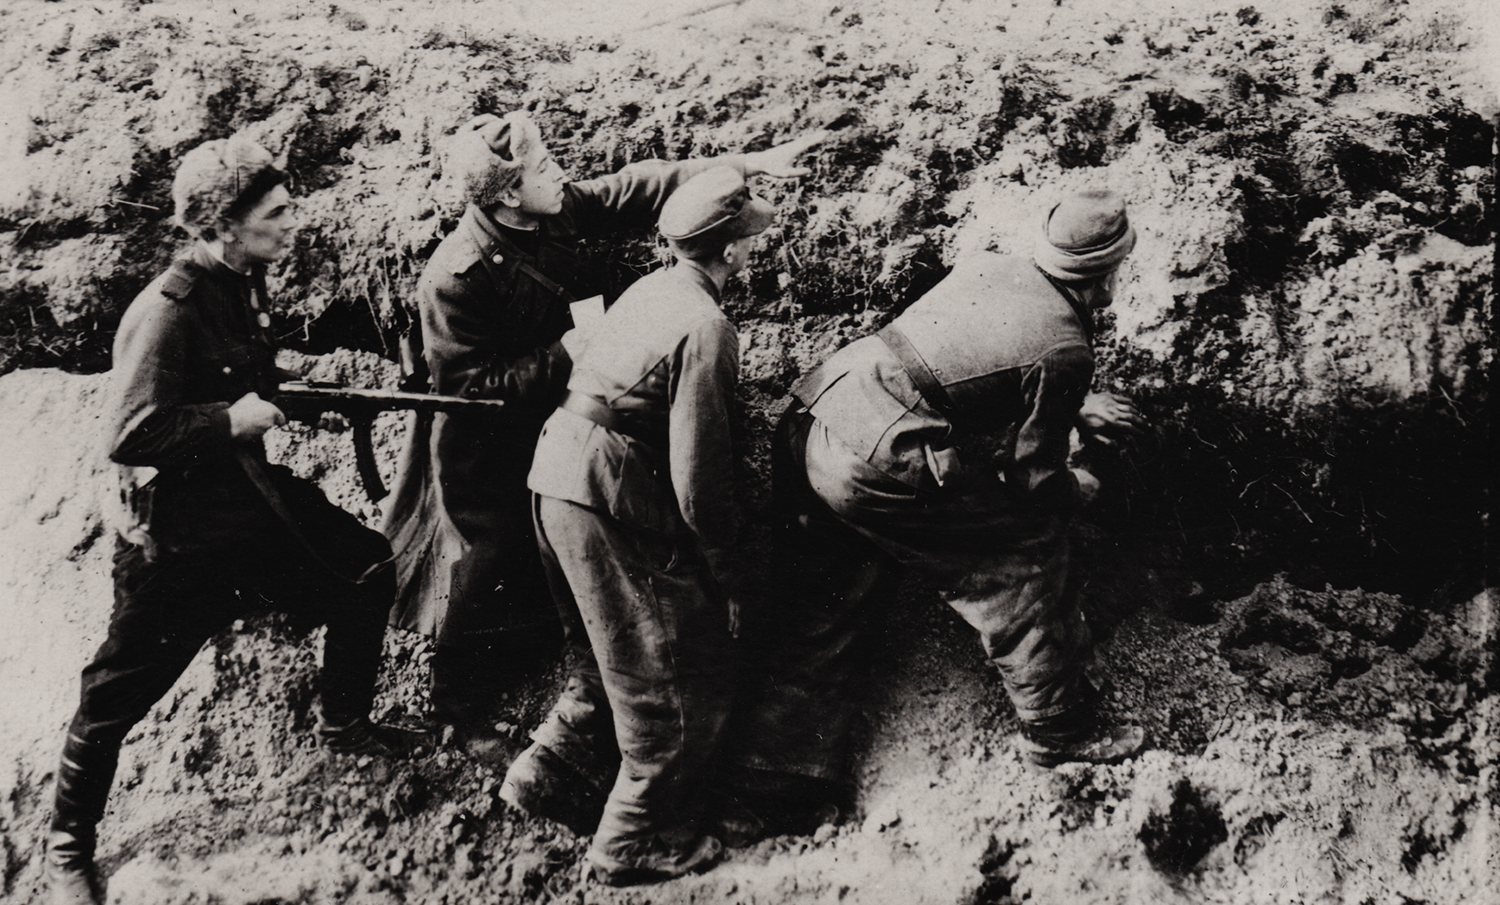 Benjamin Vysotsky and his fellow soldiers preparing for battle. Poland, 1944.